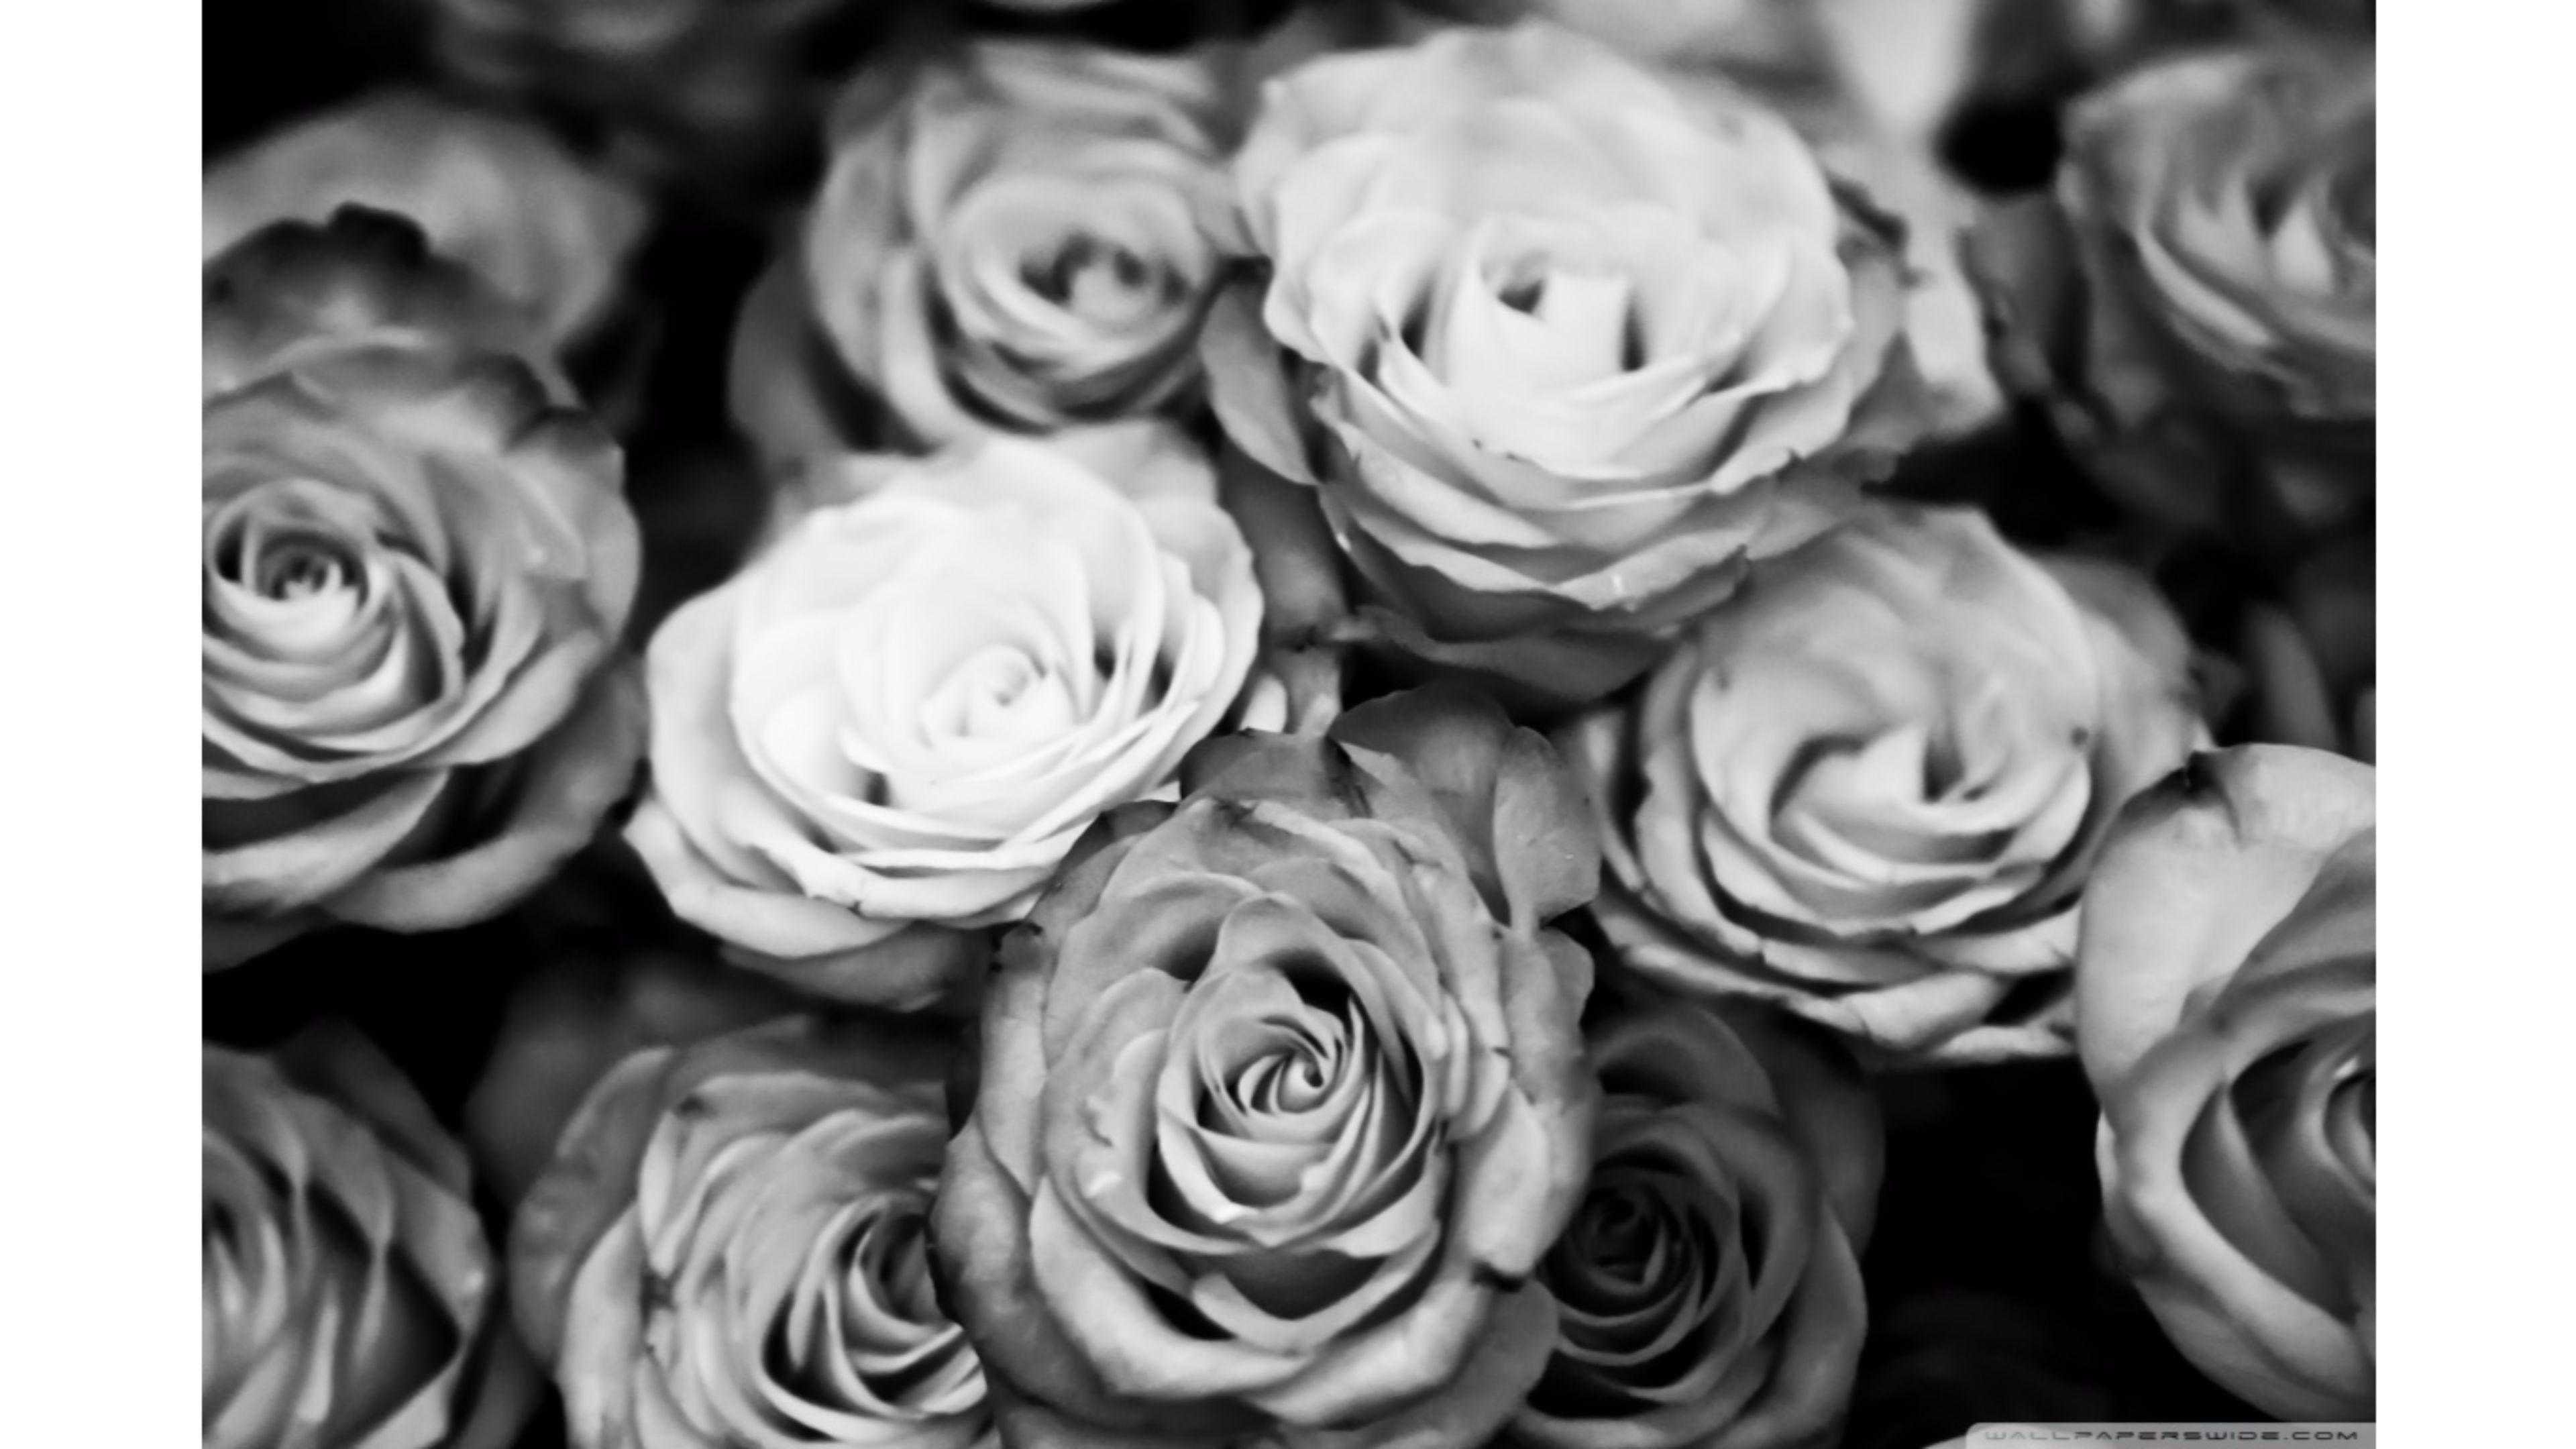 Black And White Rose Aesthetic 4k Wallpapers Wallpaper Cave